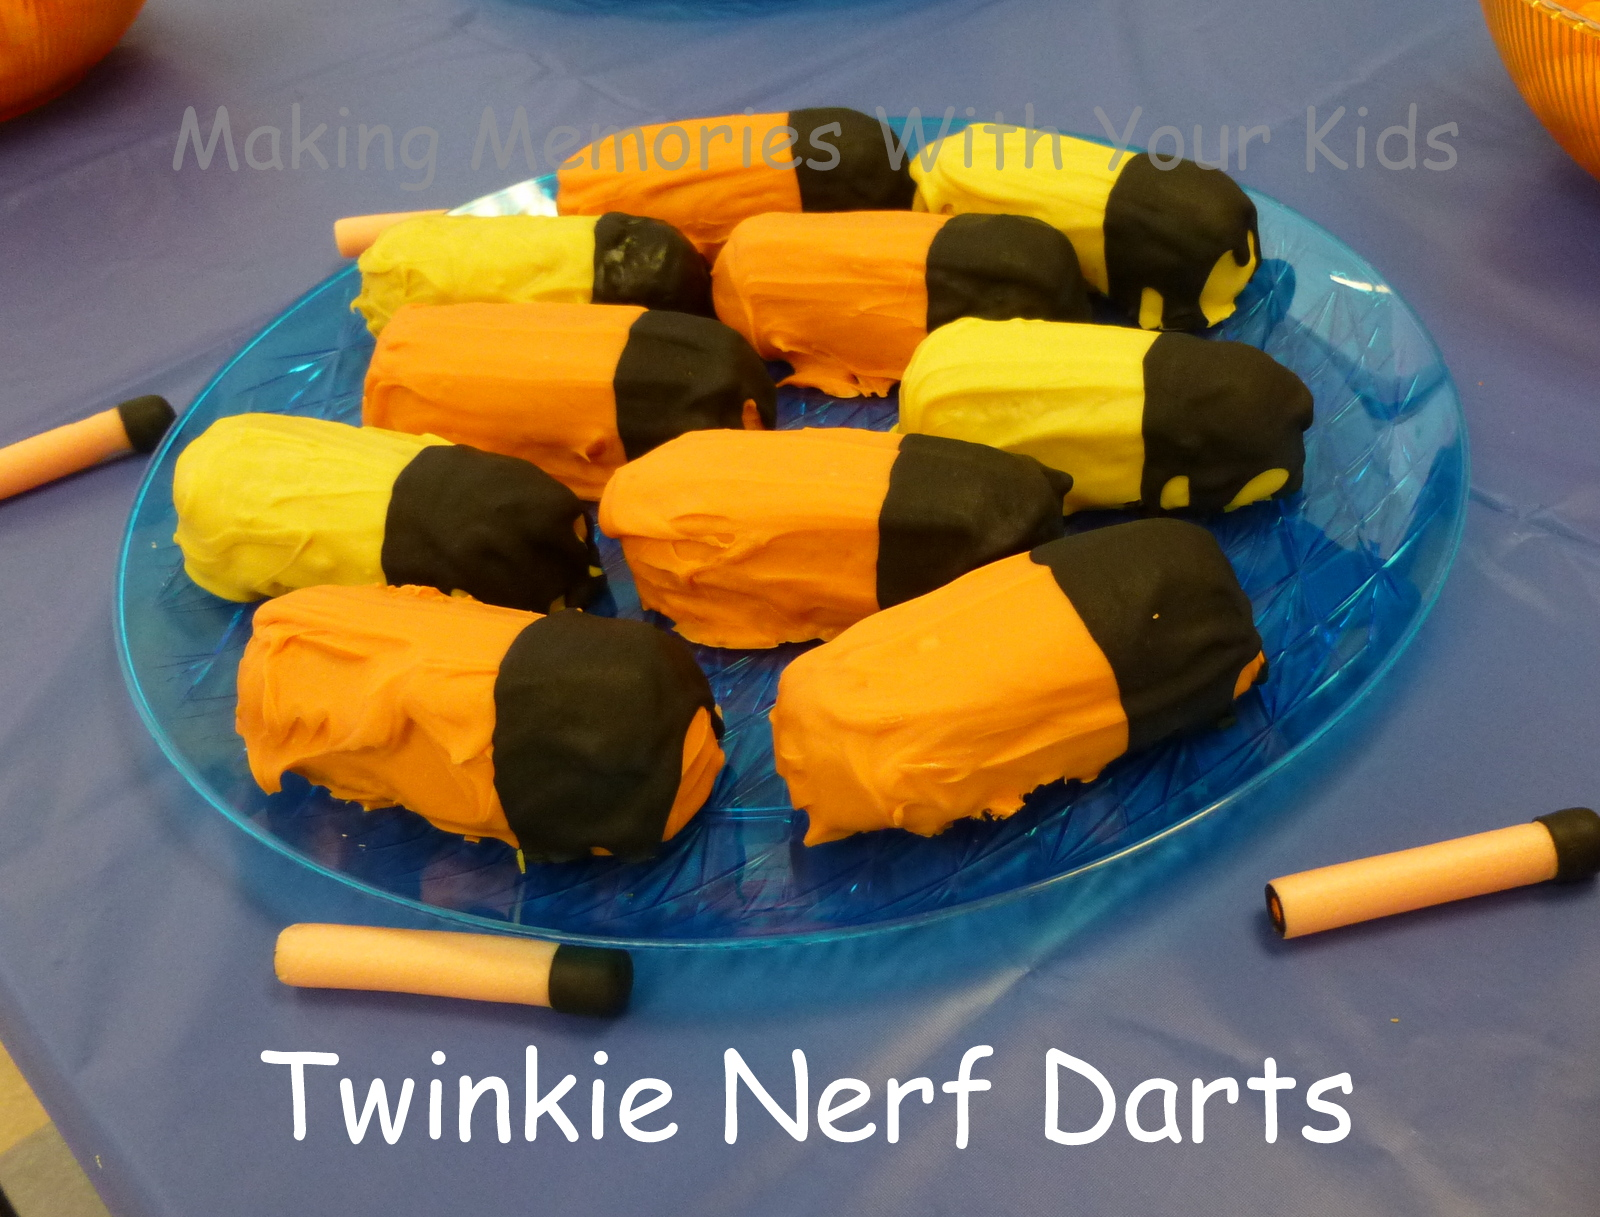 Twinkie Nerf Darts Making Memories With Your Kids